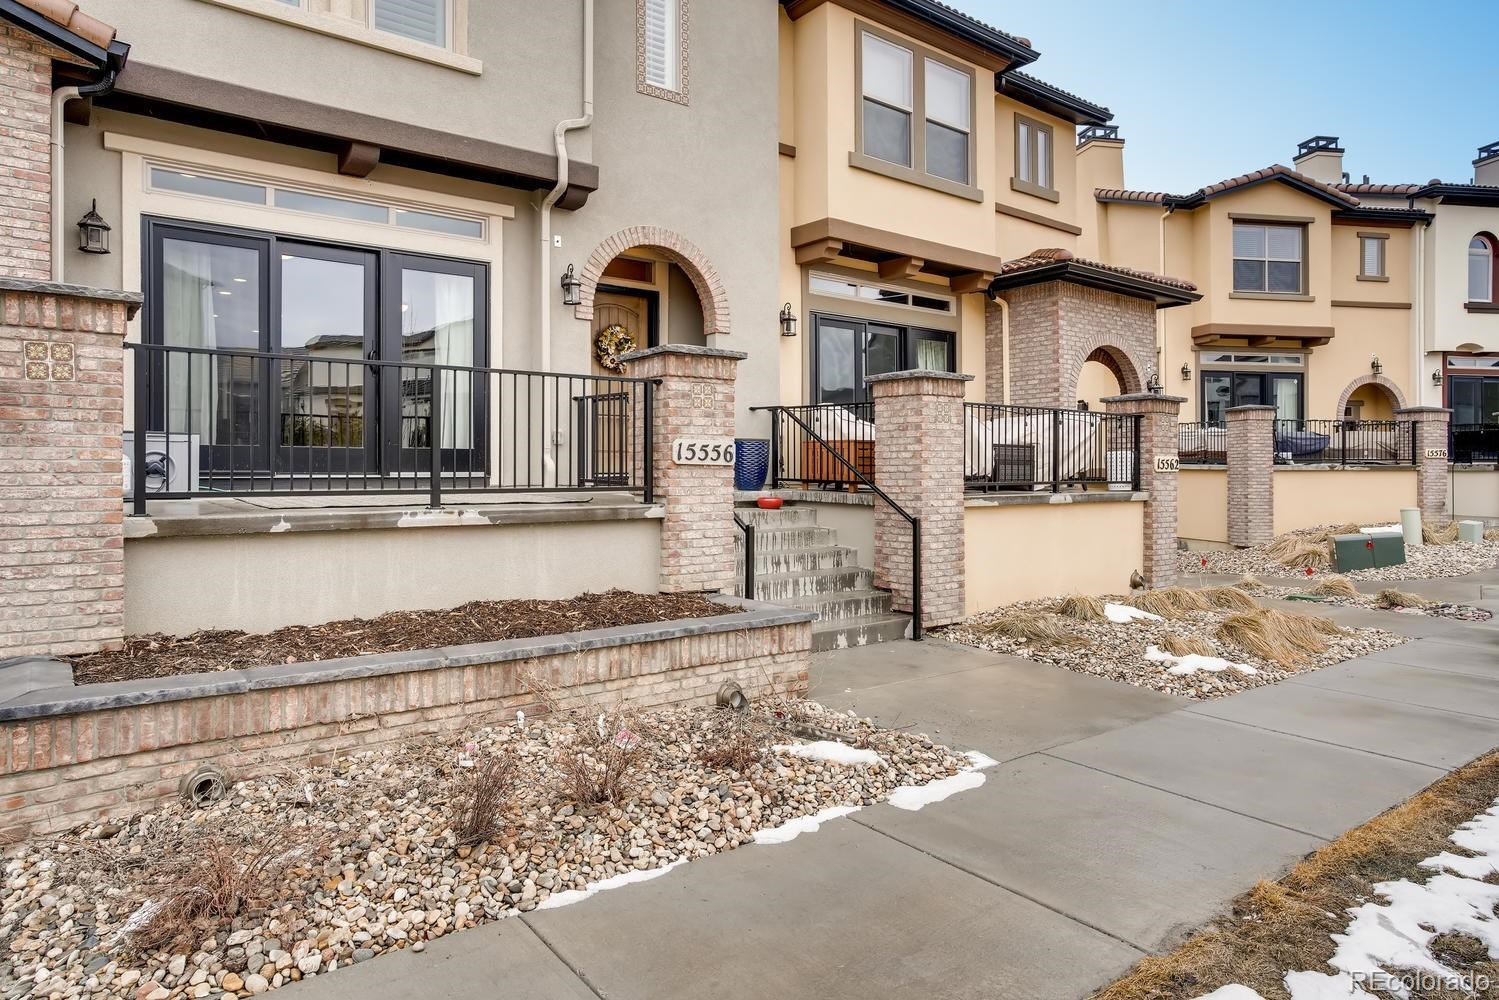 MLS# 7366960 - 2 - 15556 W Washburn Circle, Lakewood, CO 80228